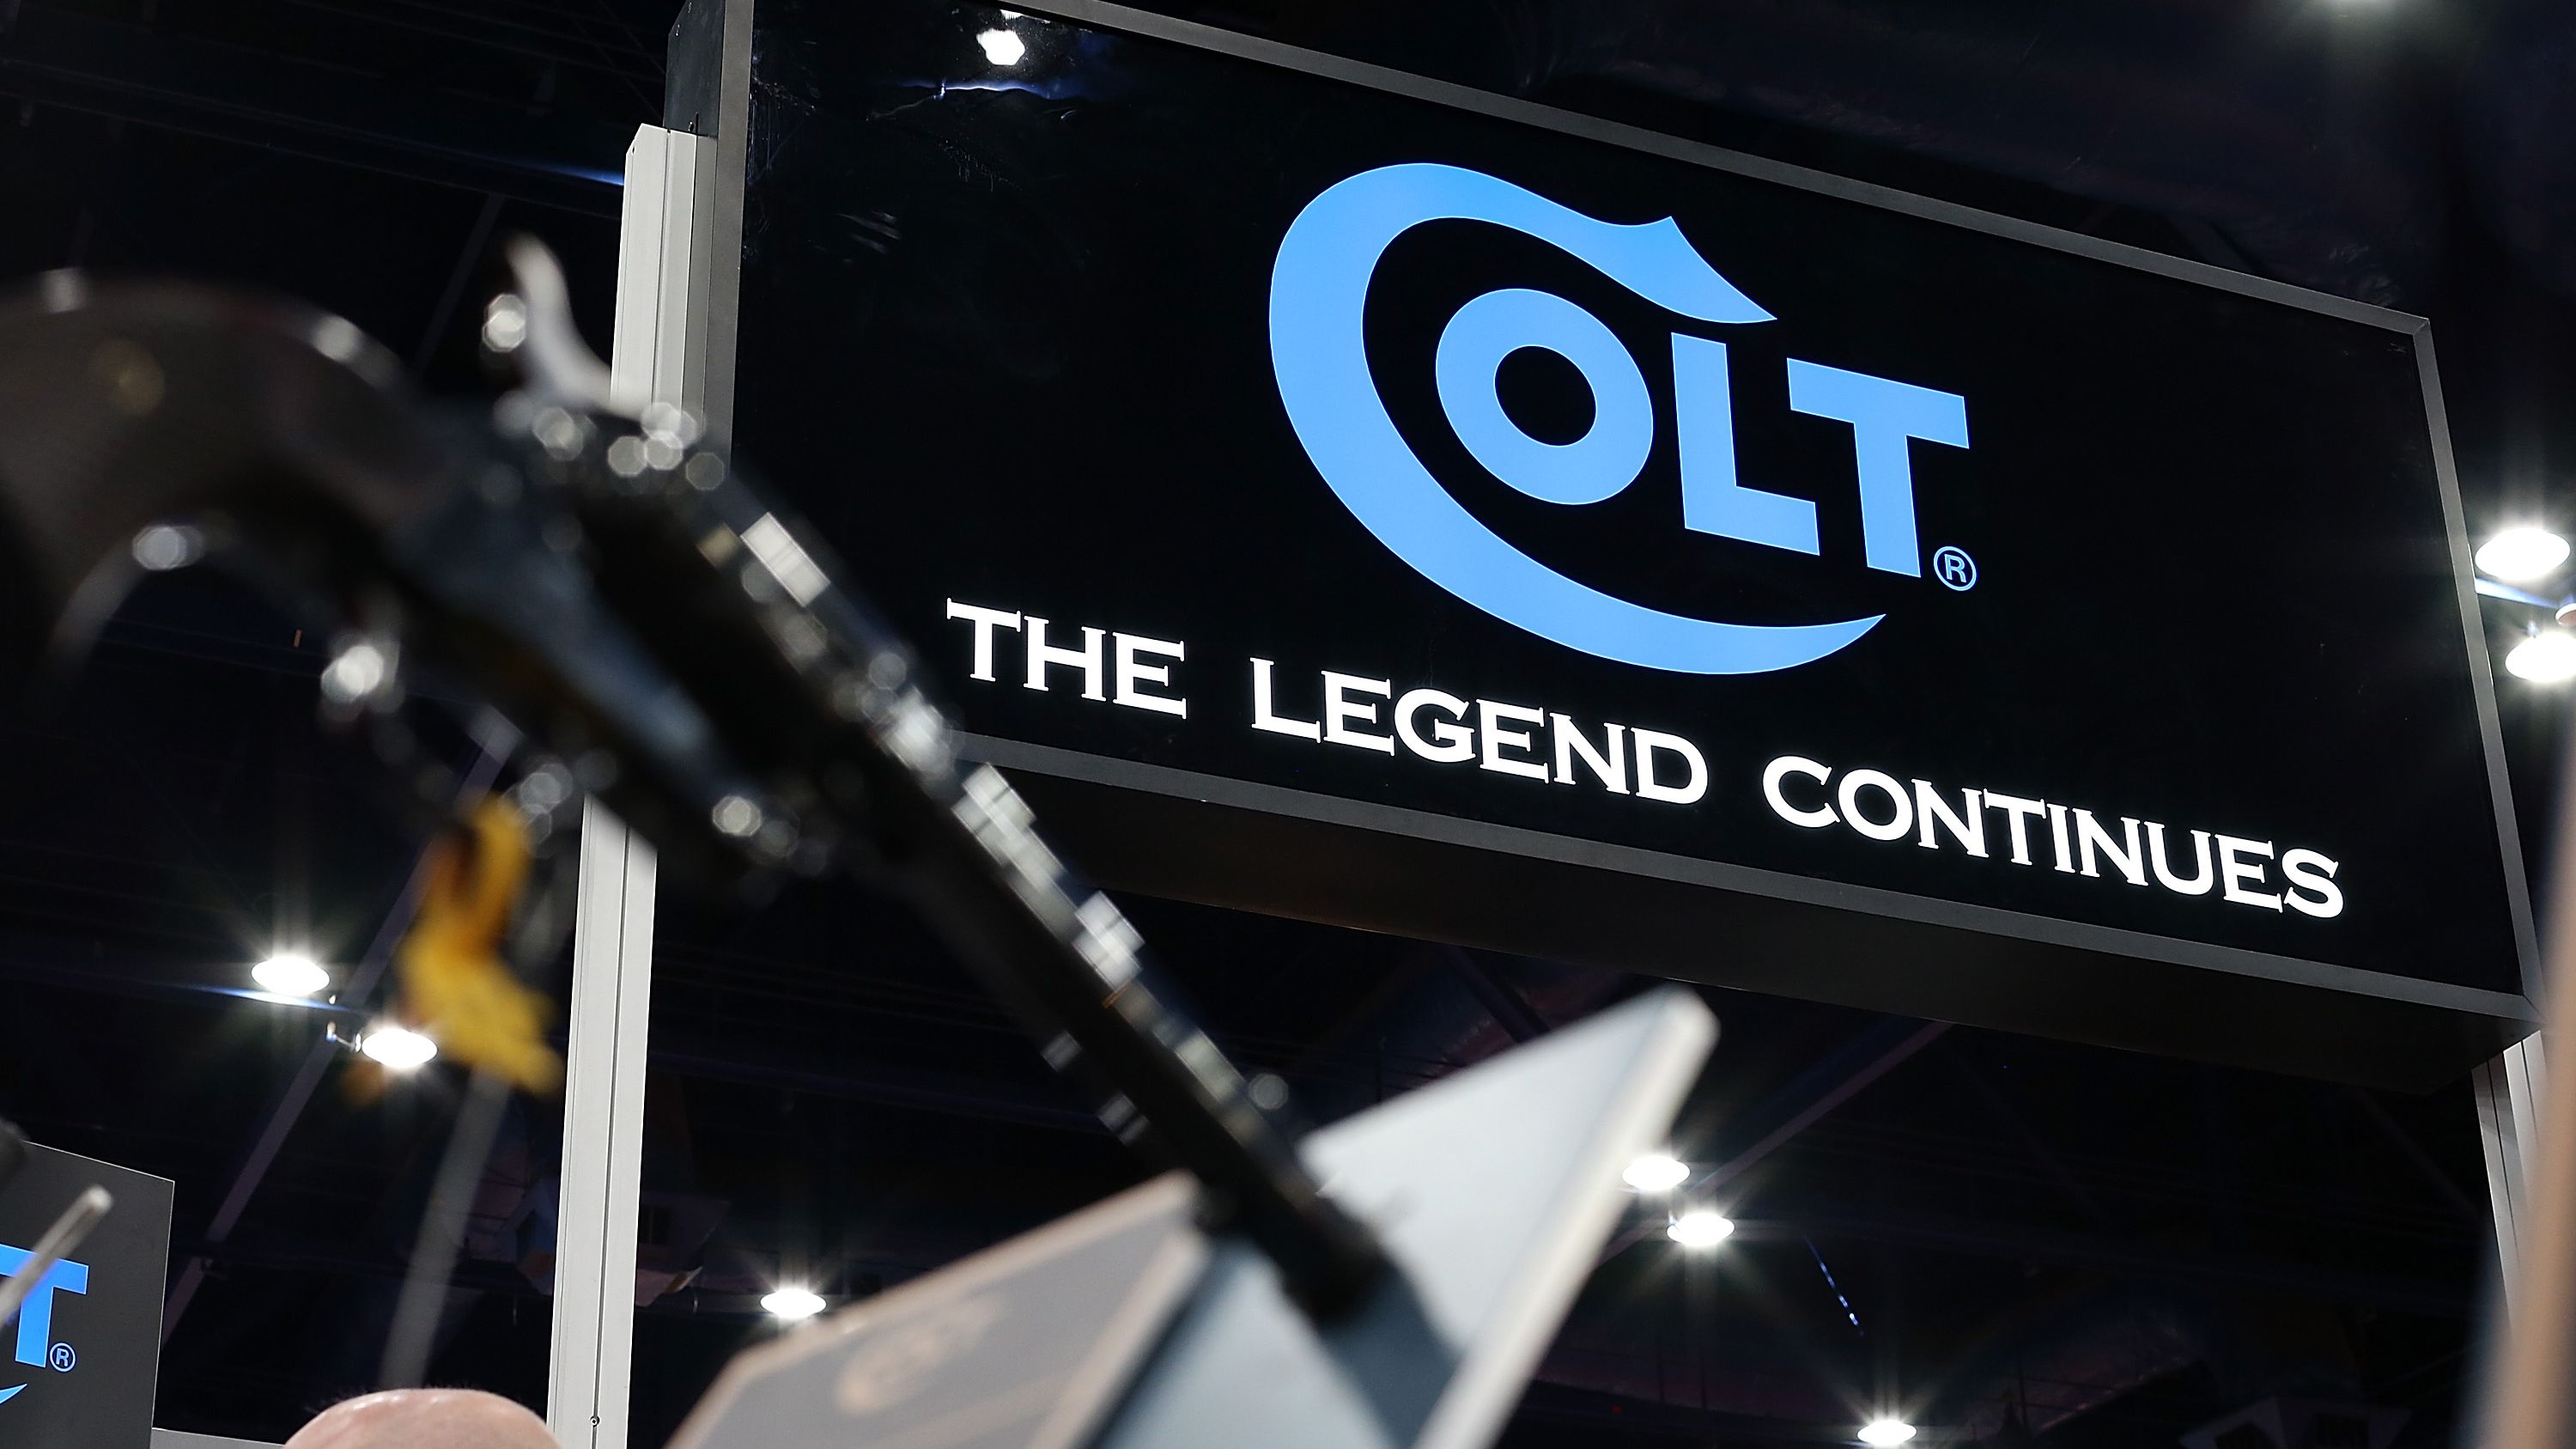 Why Colt Can't Stay Out of Bankruptcy